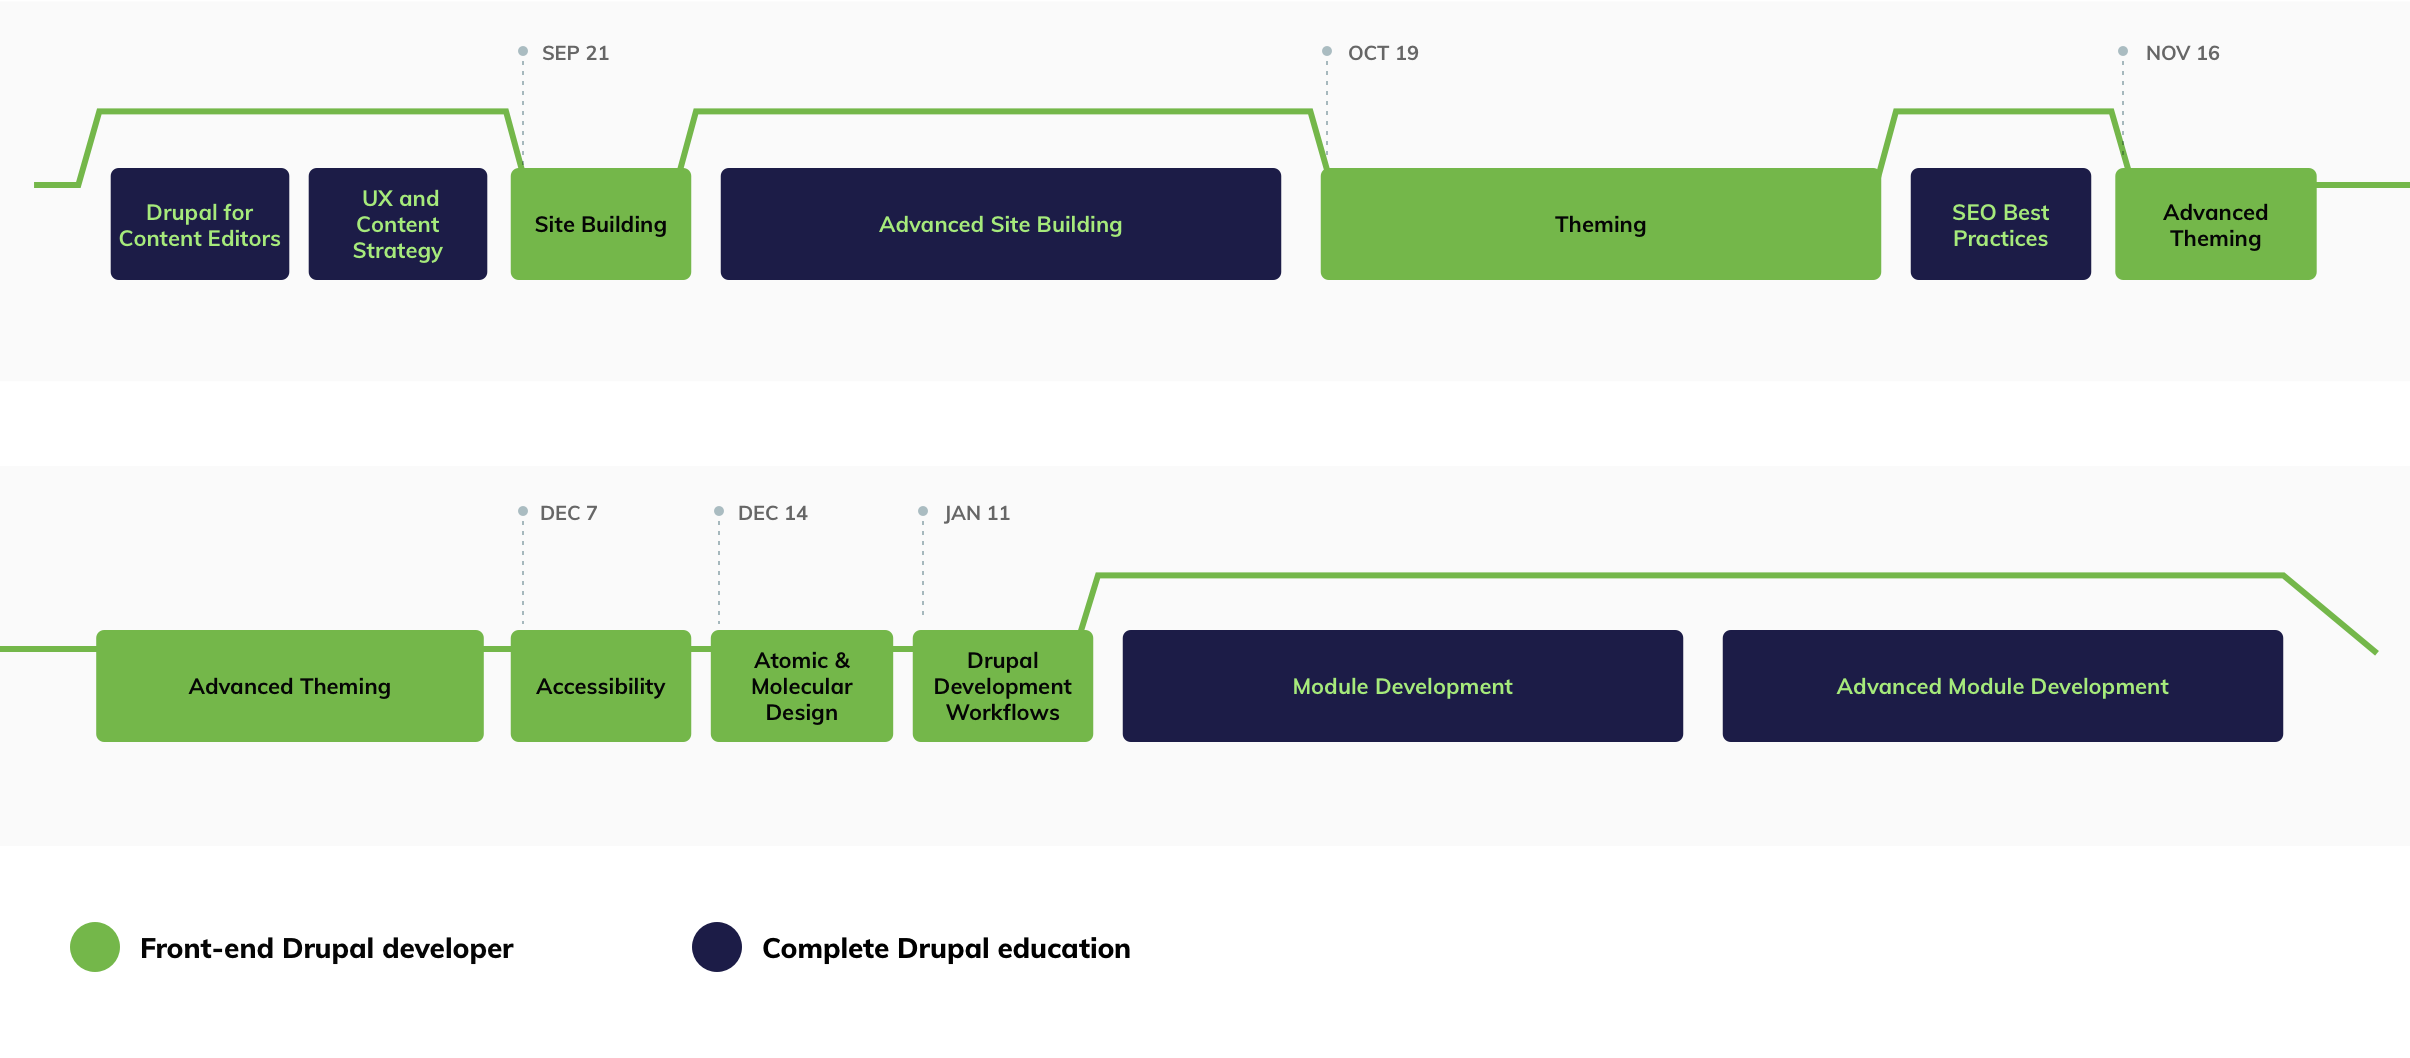 Front-end Drupal Developer Track graphic showing all courses and dates in order of appearance